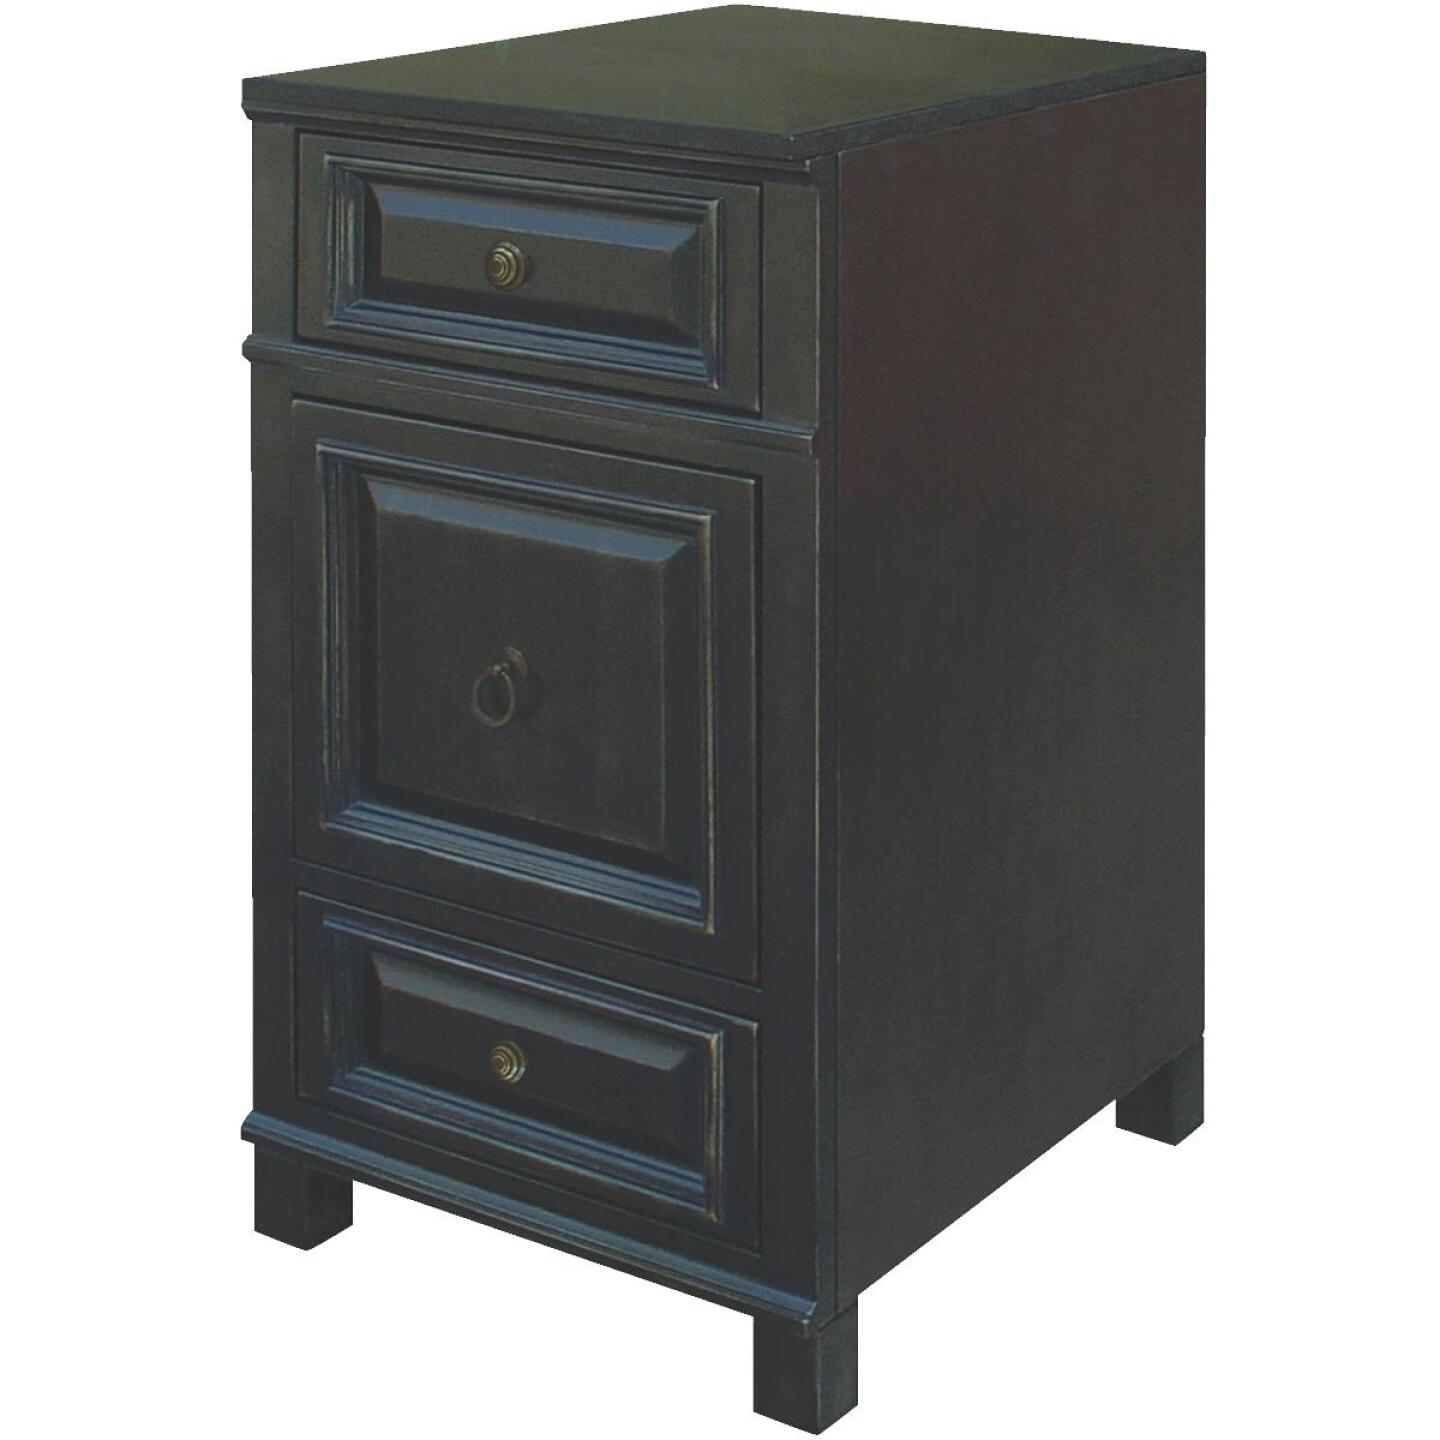 Sunny Wood Barton Hill 18 In. W x 34 In. H x 21 In. D Black Onyx Linen Cabinet Base Image 1